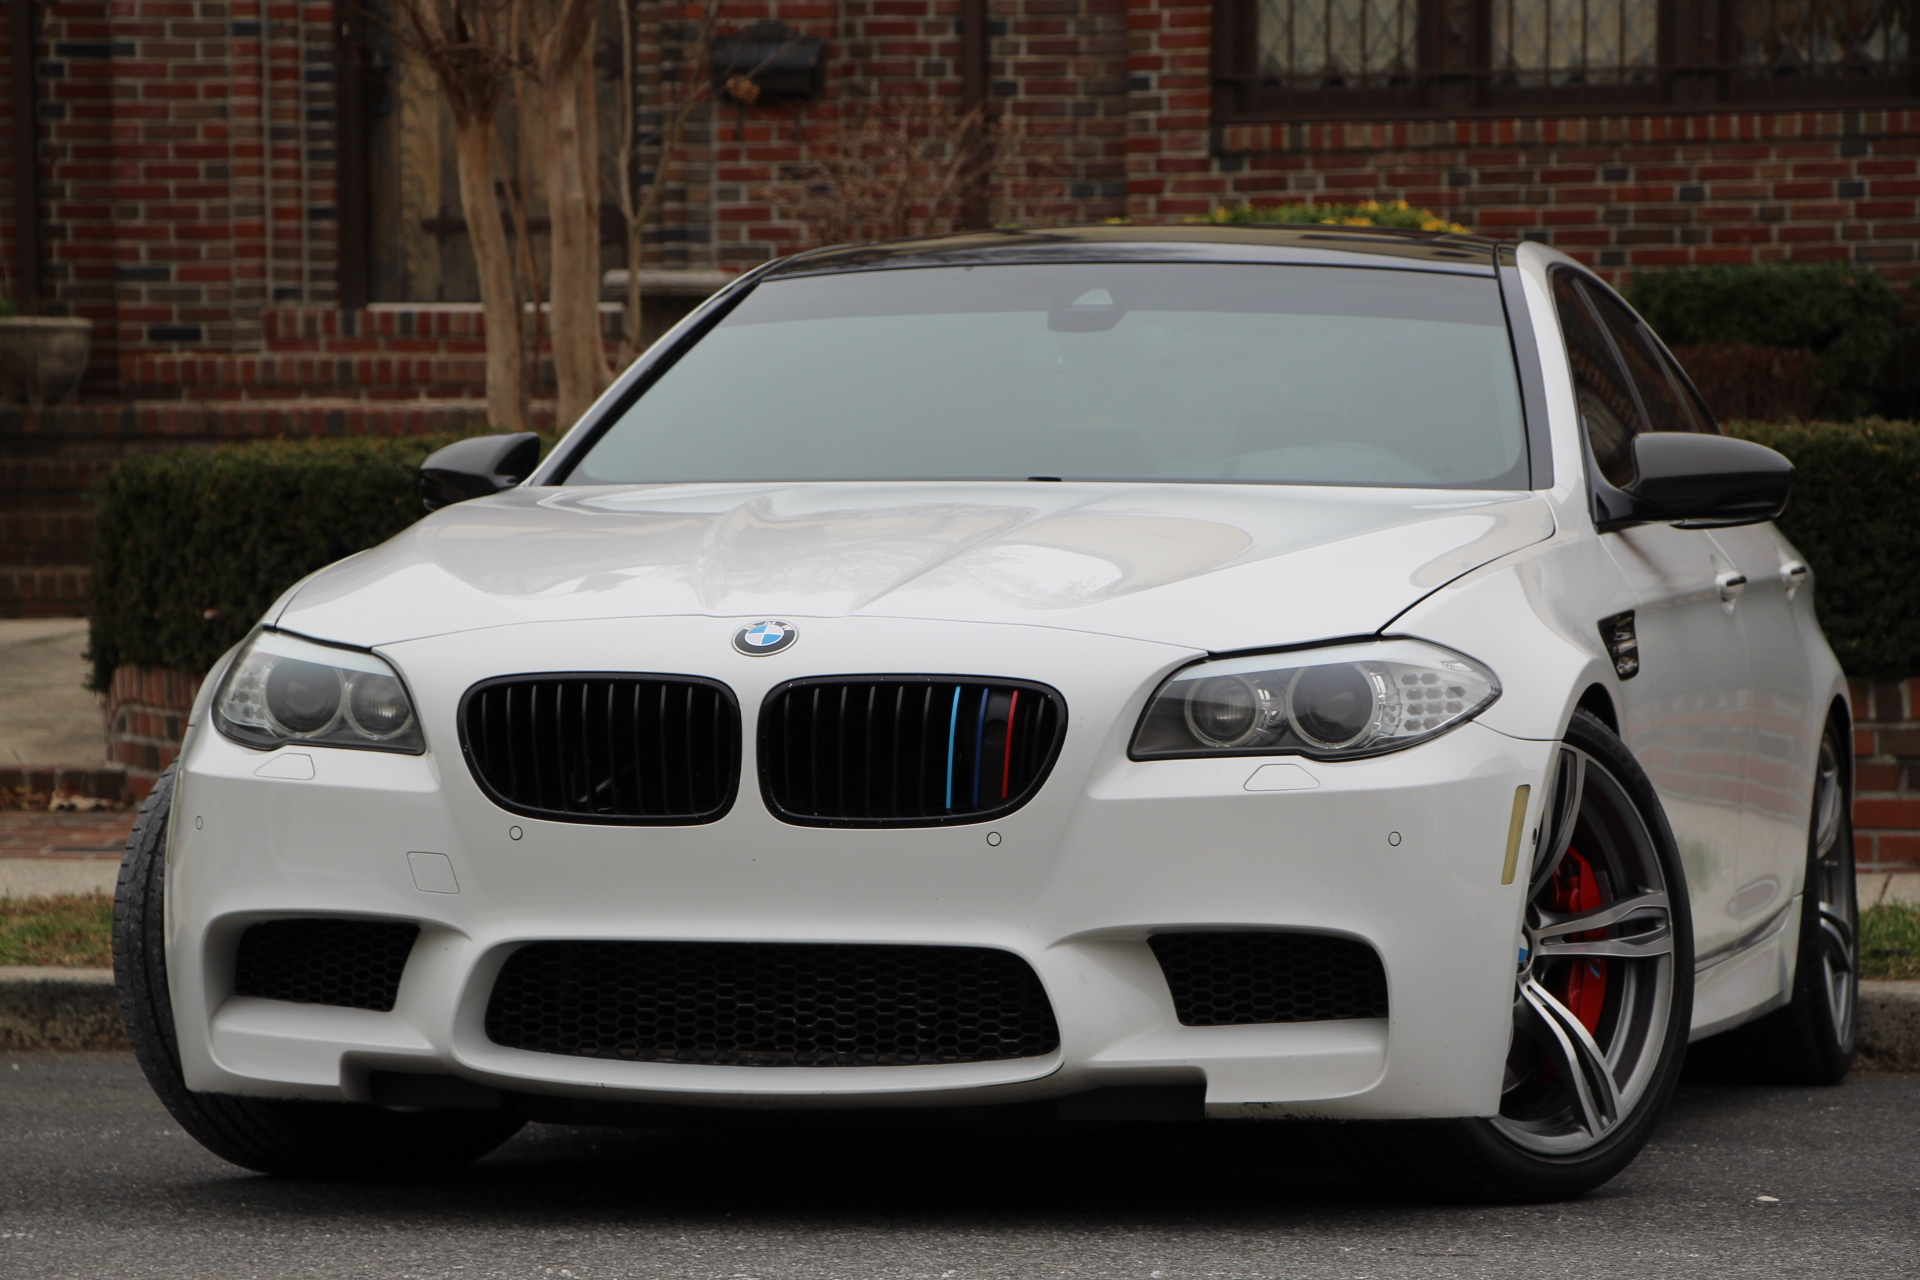 Buy Used 2013 Bmw M5 For 29 900 From Trusted Dealer In Brooklyn Ny